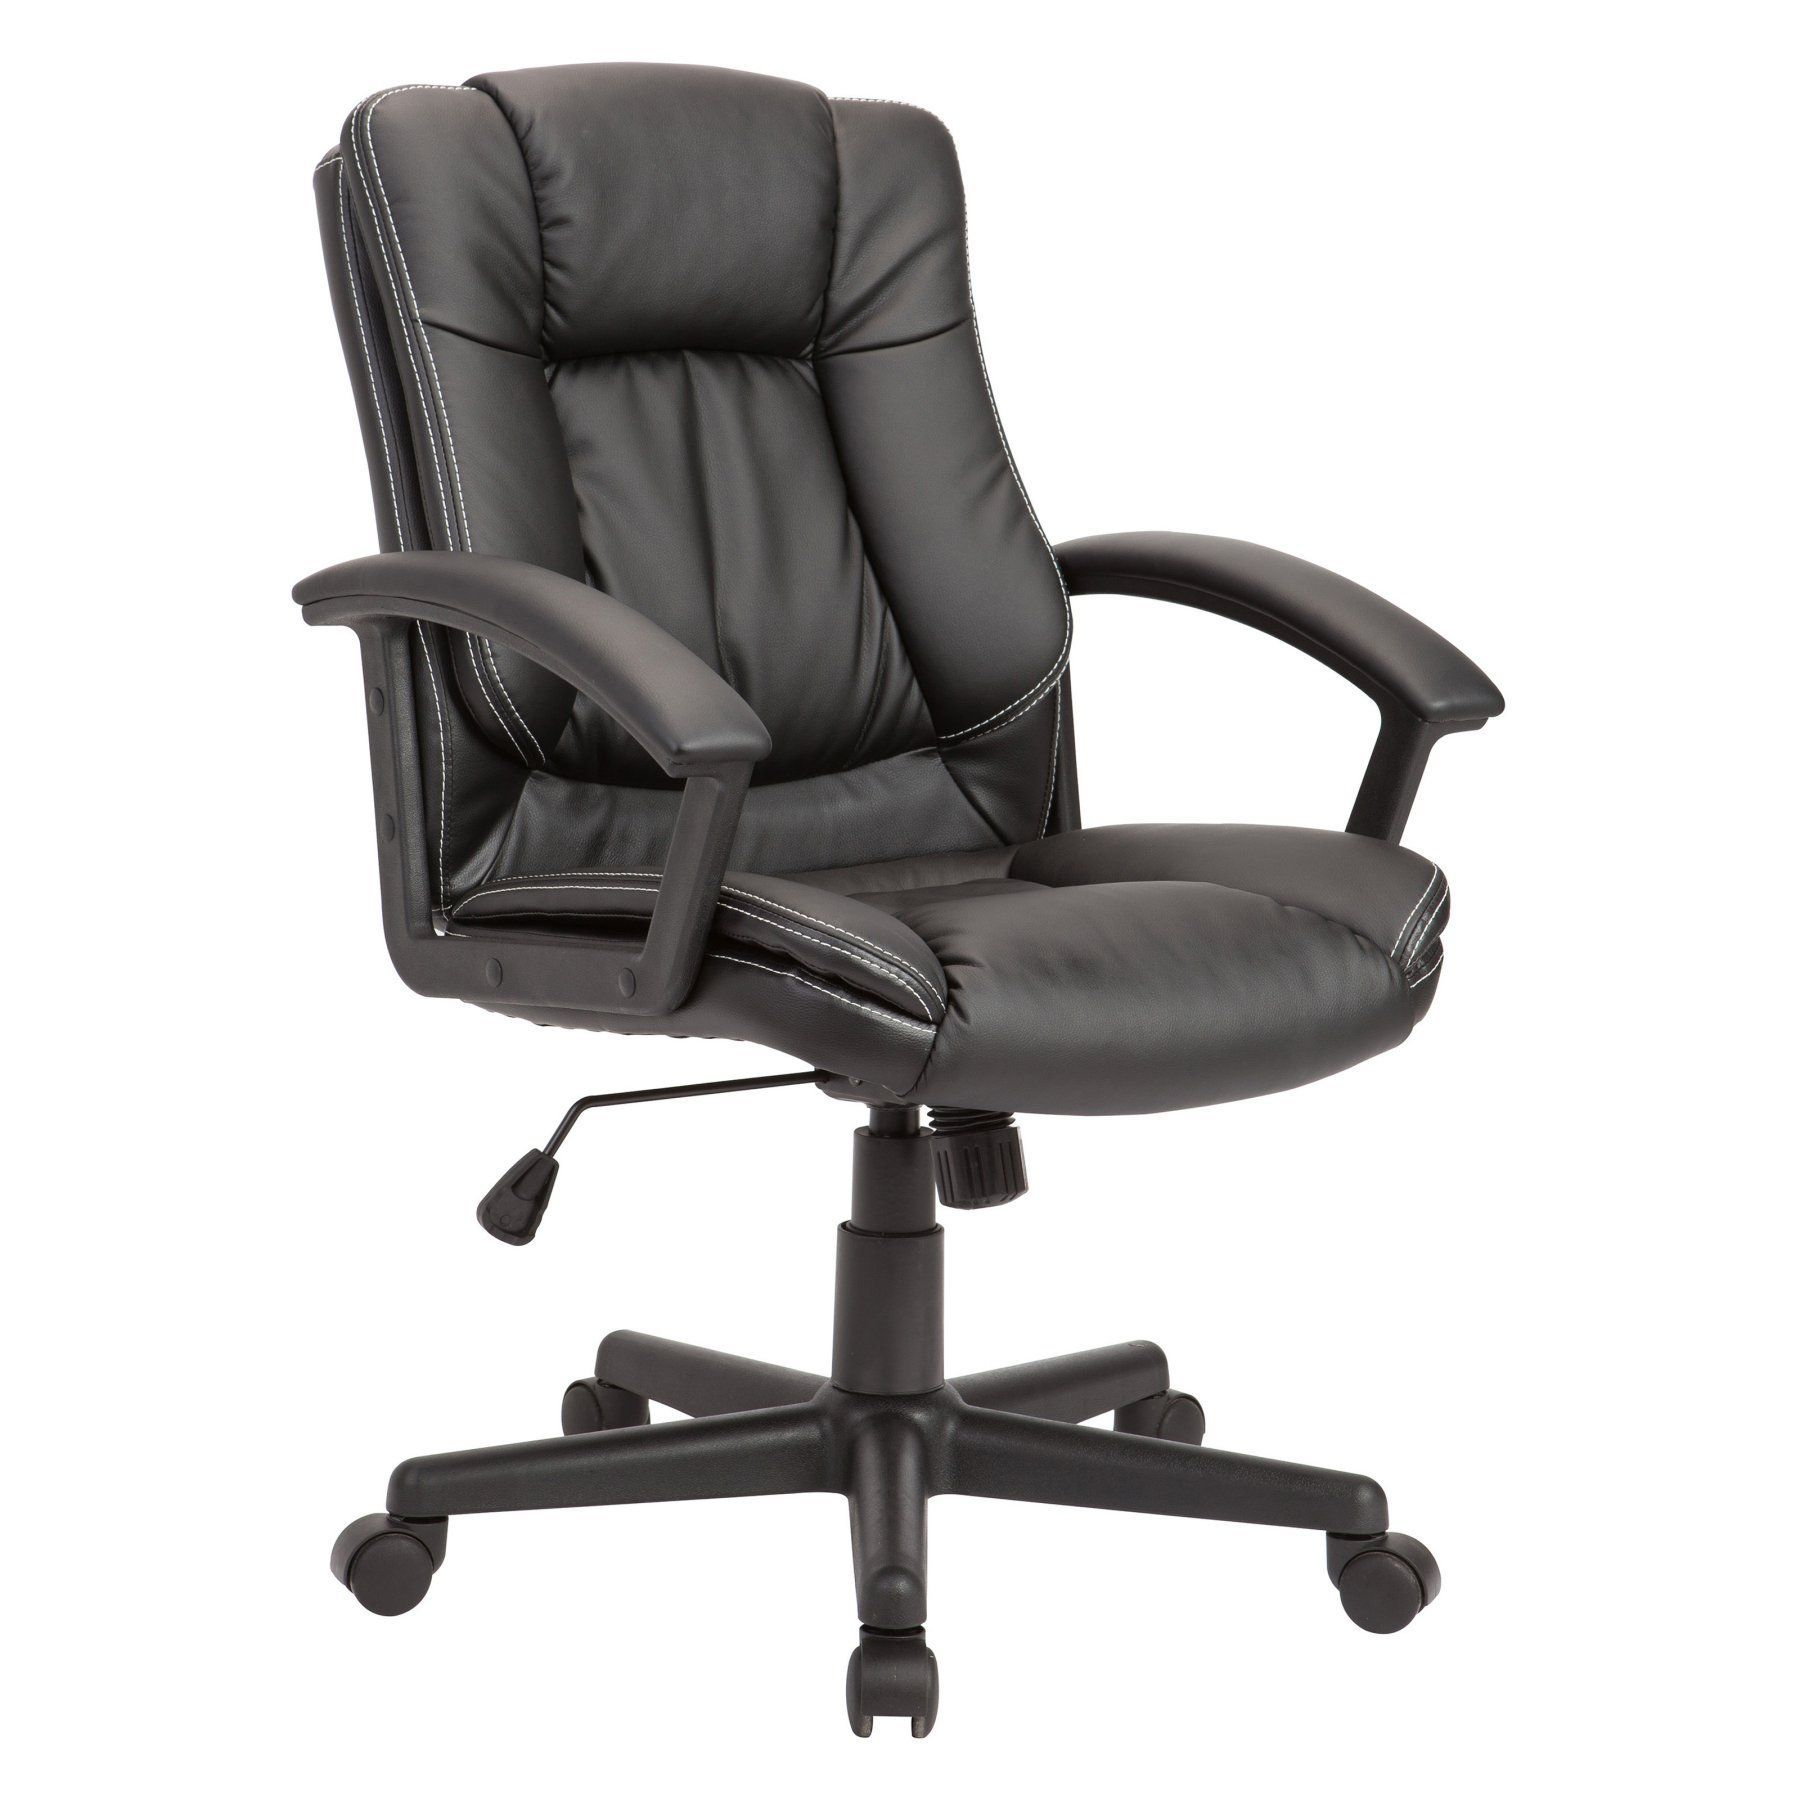 Christies Home Living Nylon Adjustable Swivel Office Chair  Black